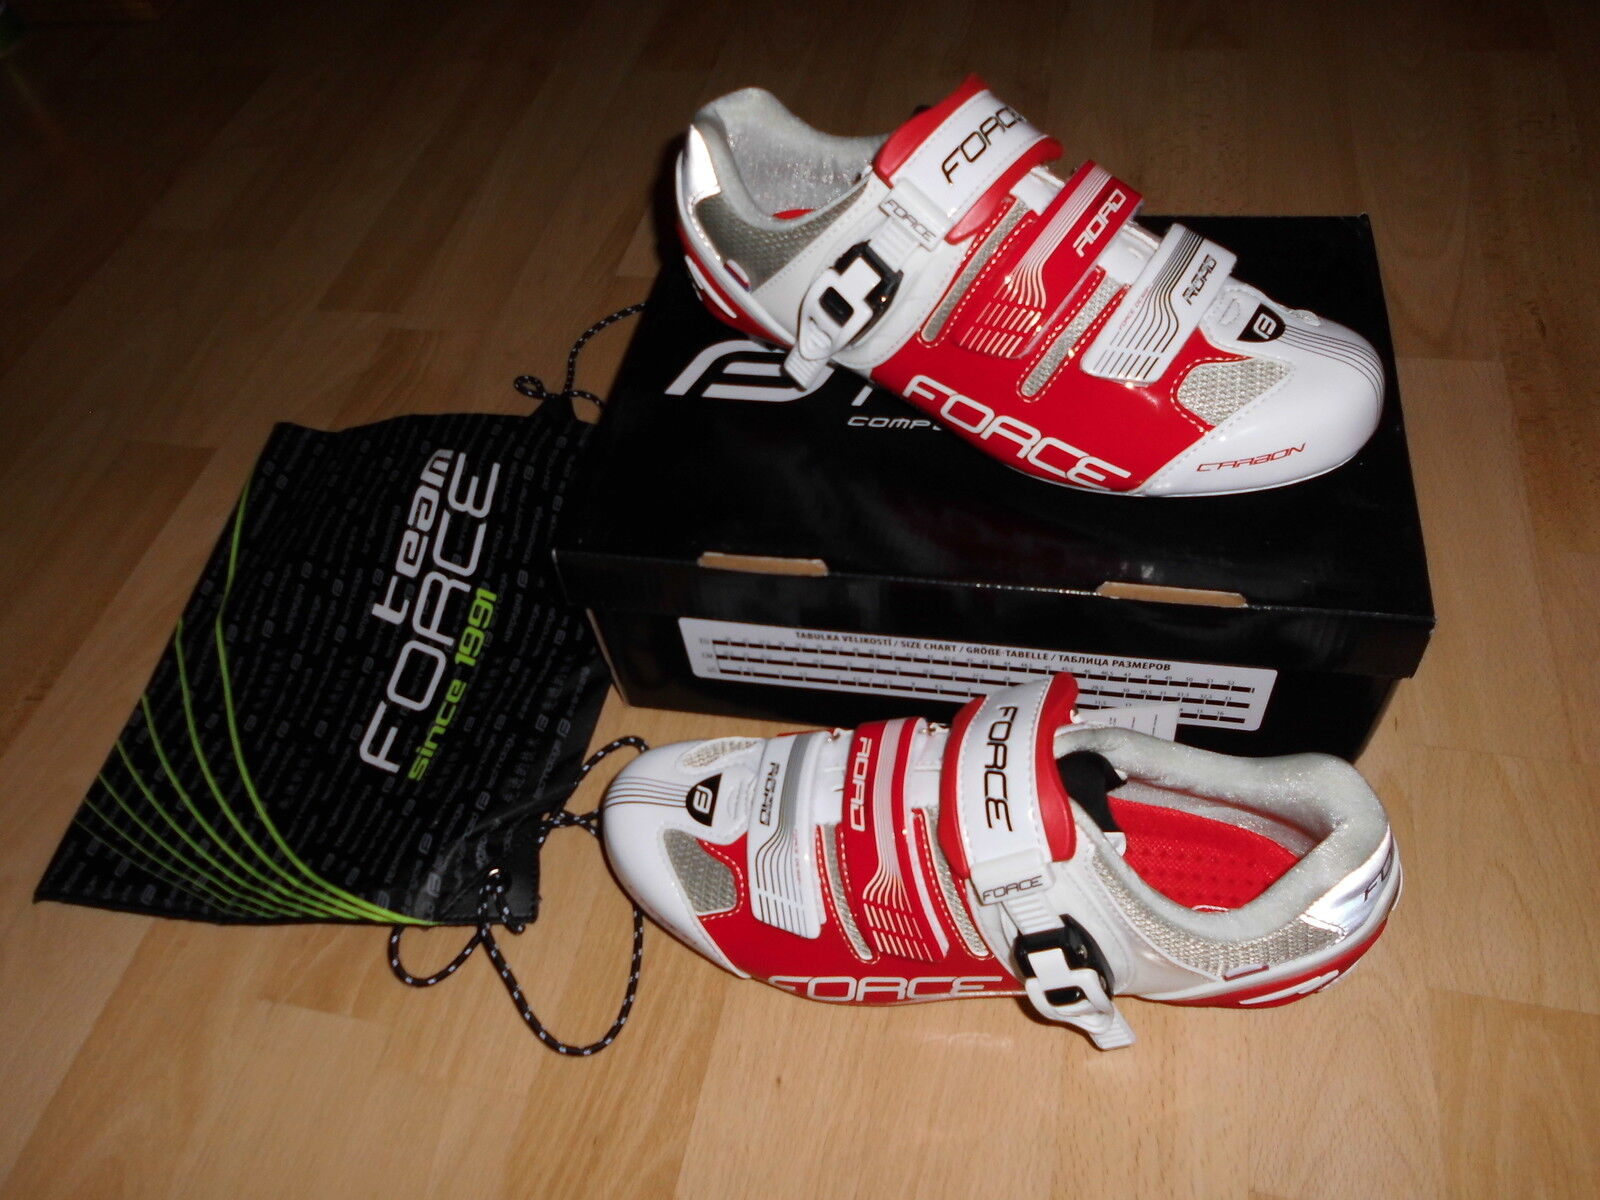 Rennrad Schuhe Force Carbon  road gr. 44, andere weiss Neu, andere 44,   grosse  nach Frage 1139ad